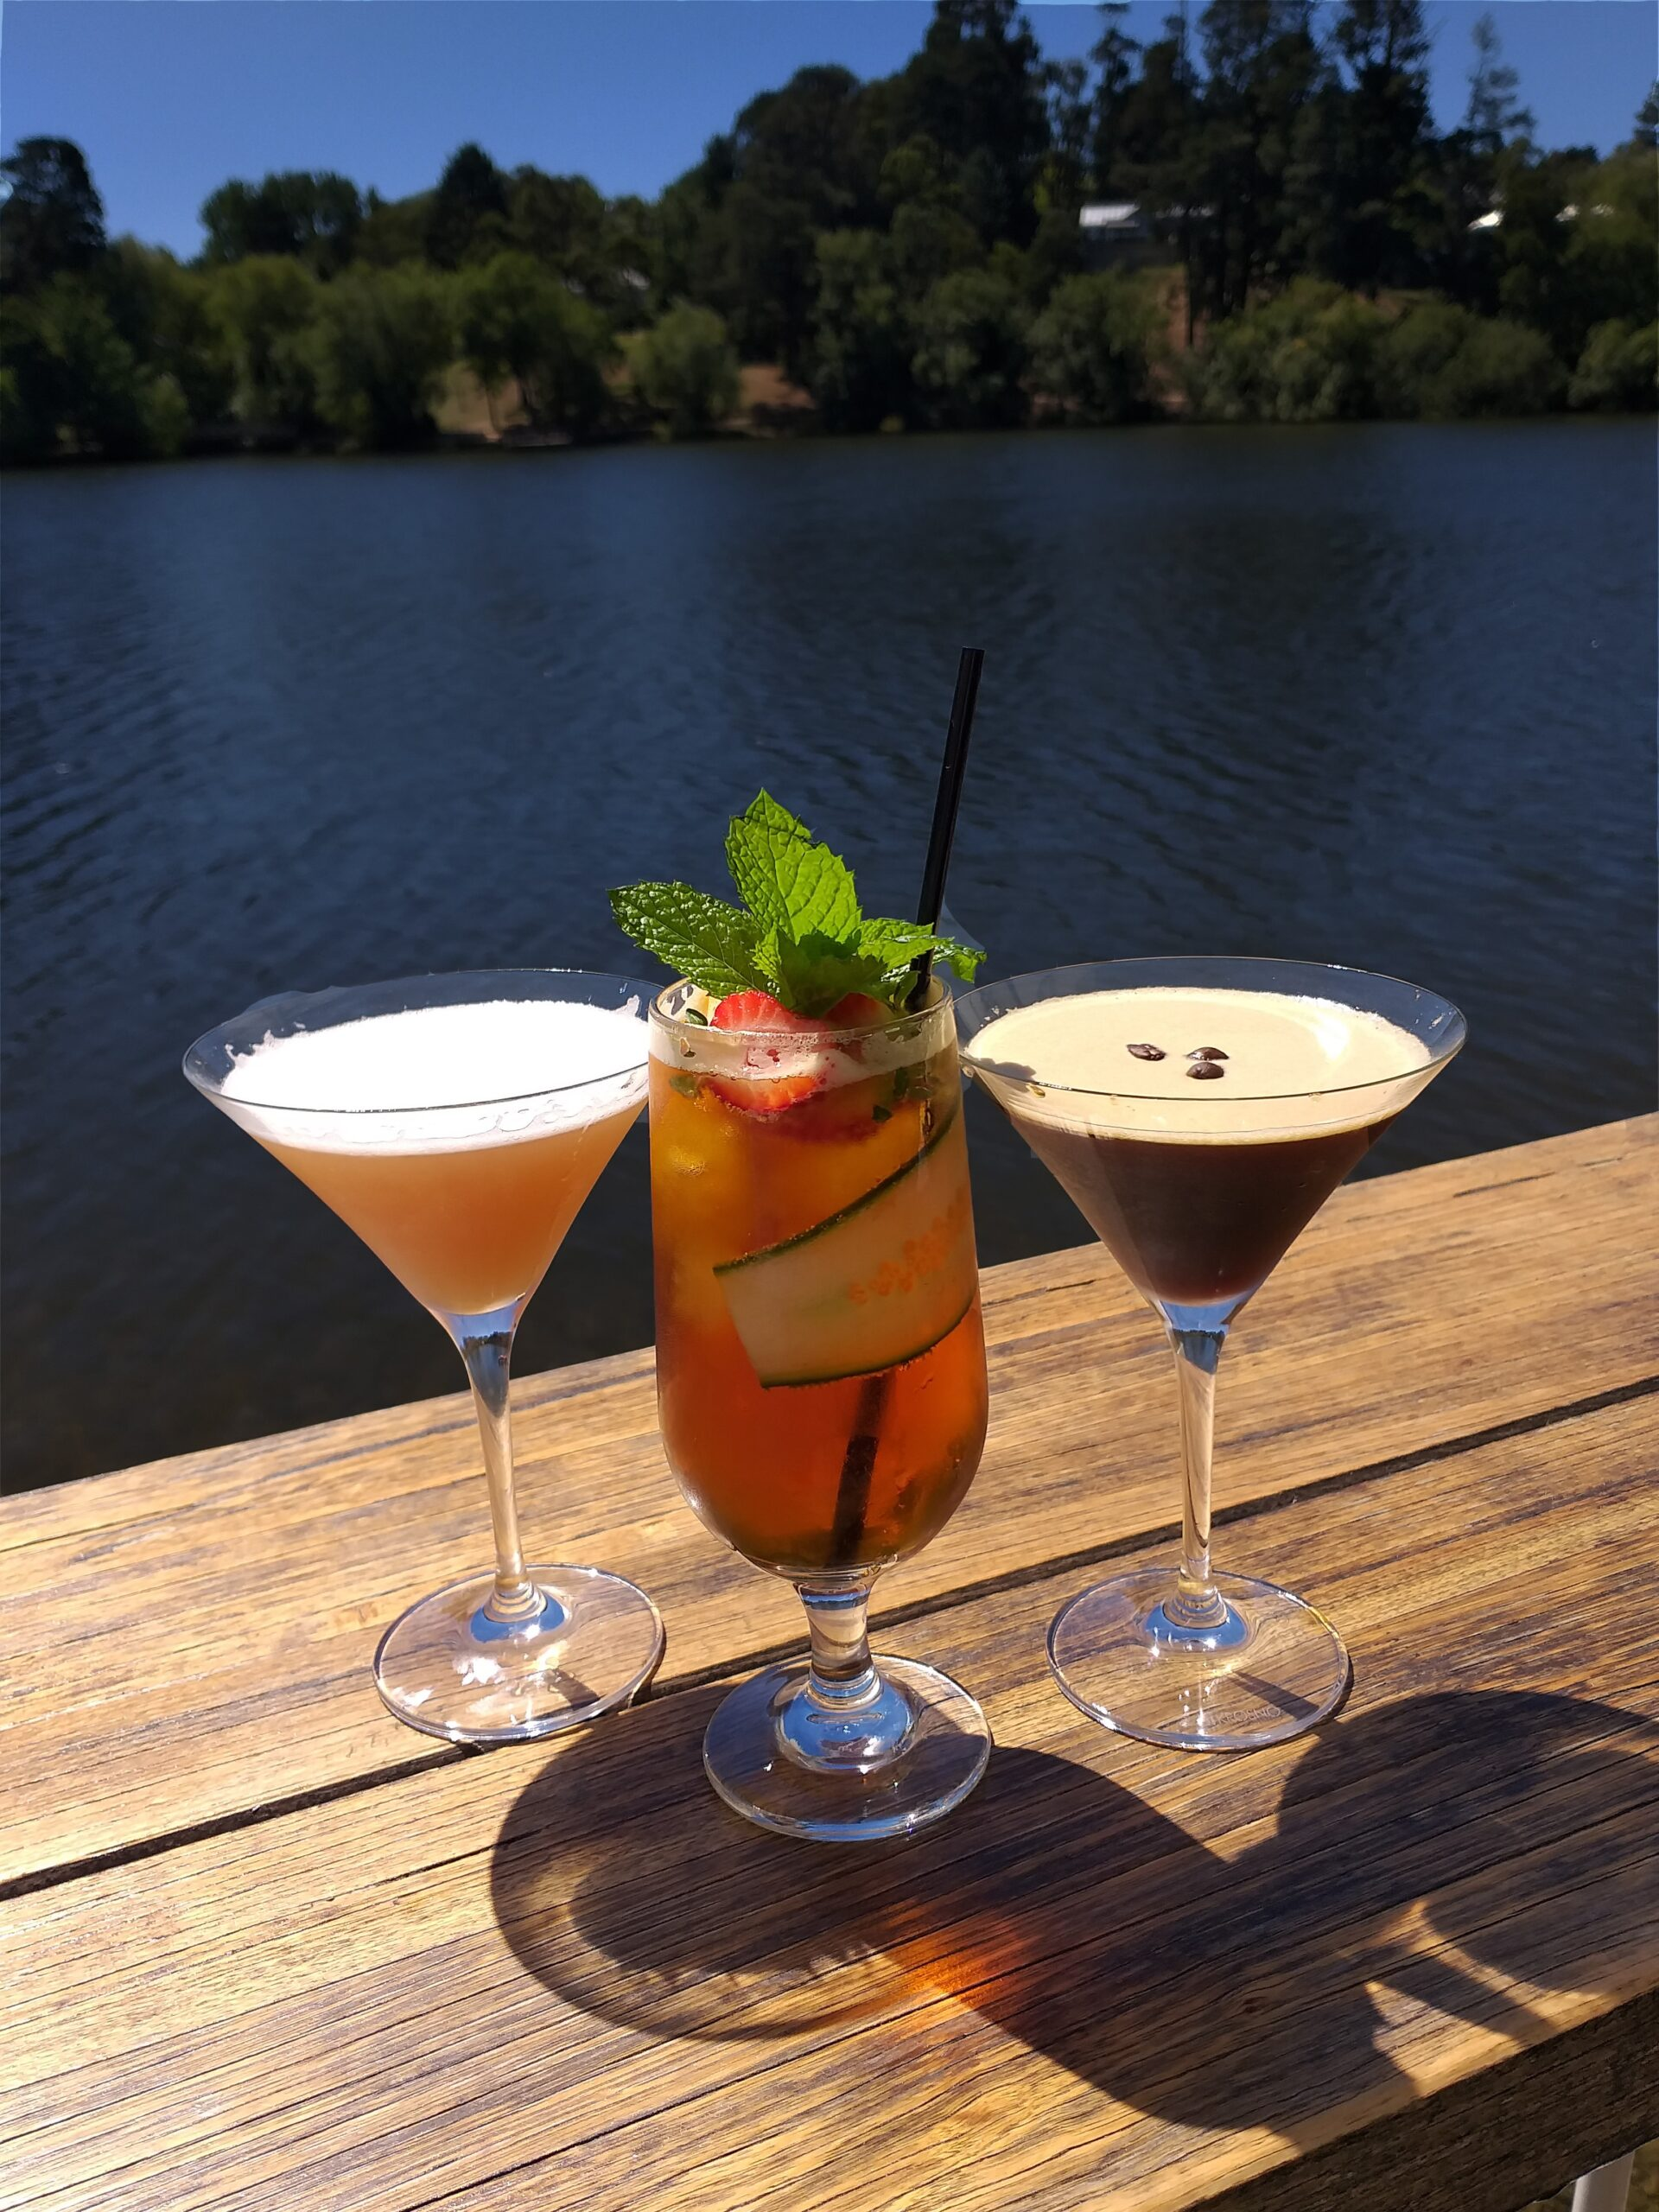 The Boathouse puts lake view back on menu